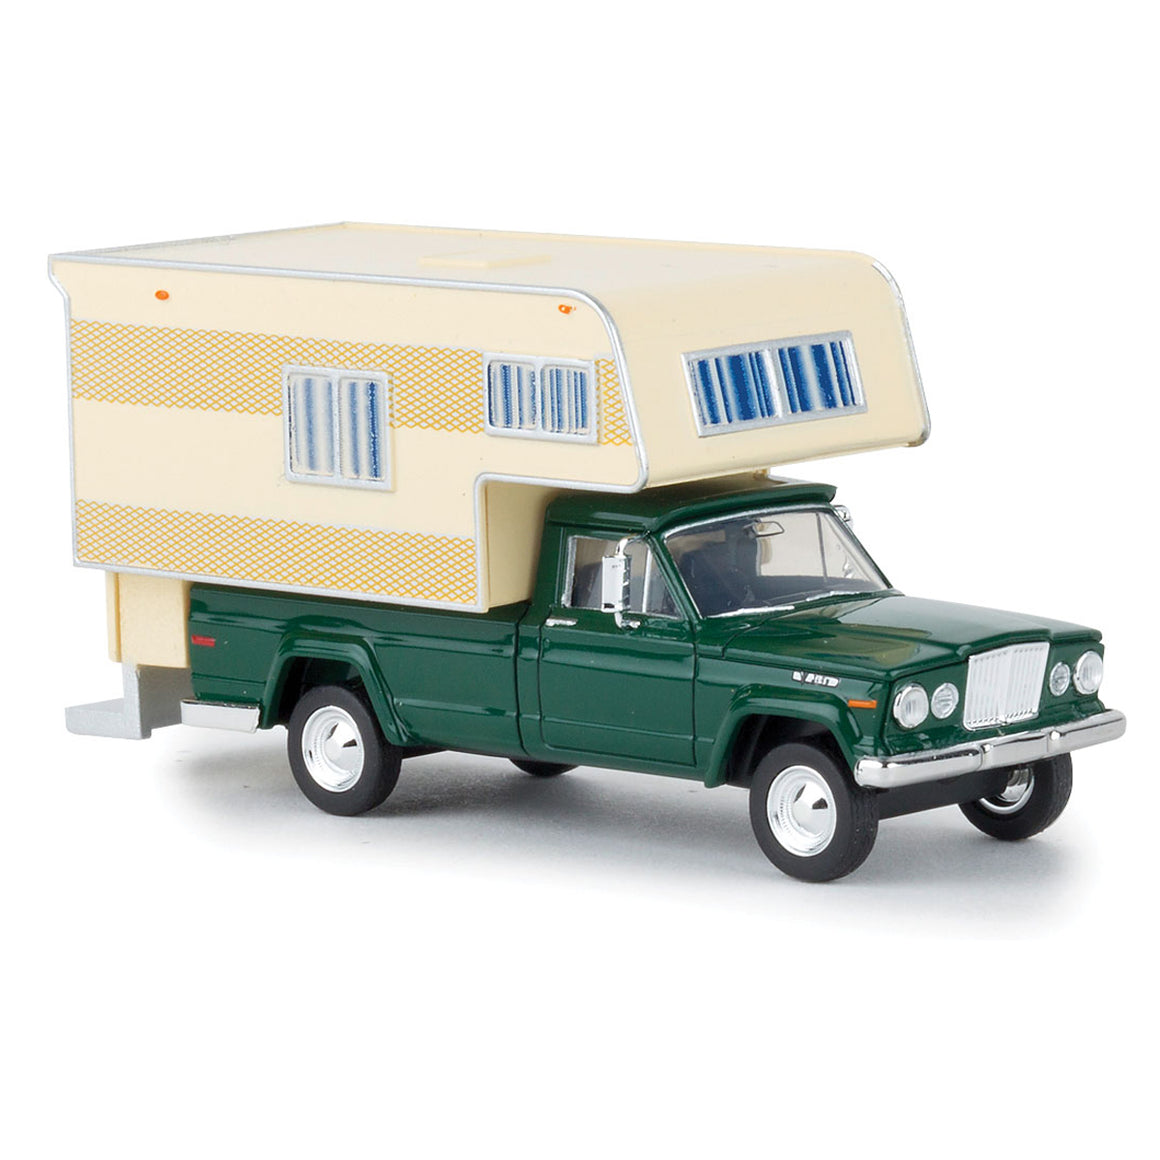 HO Scale: 1962 Jeep Gladiator Pickup Truck w/ Camper - Green